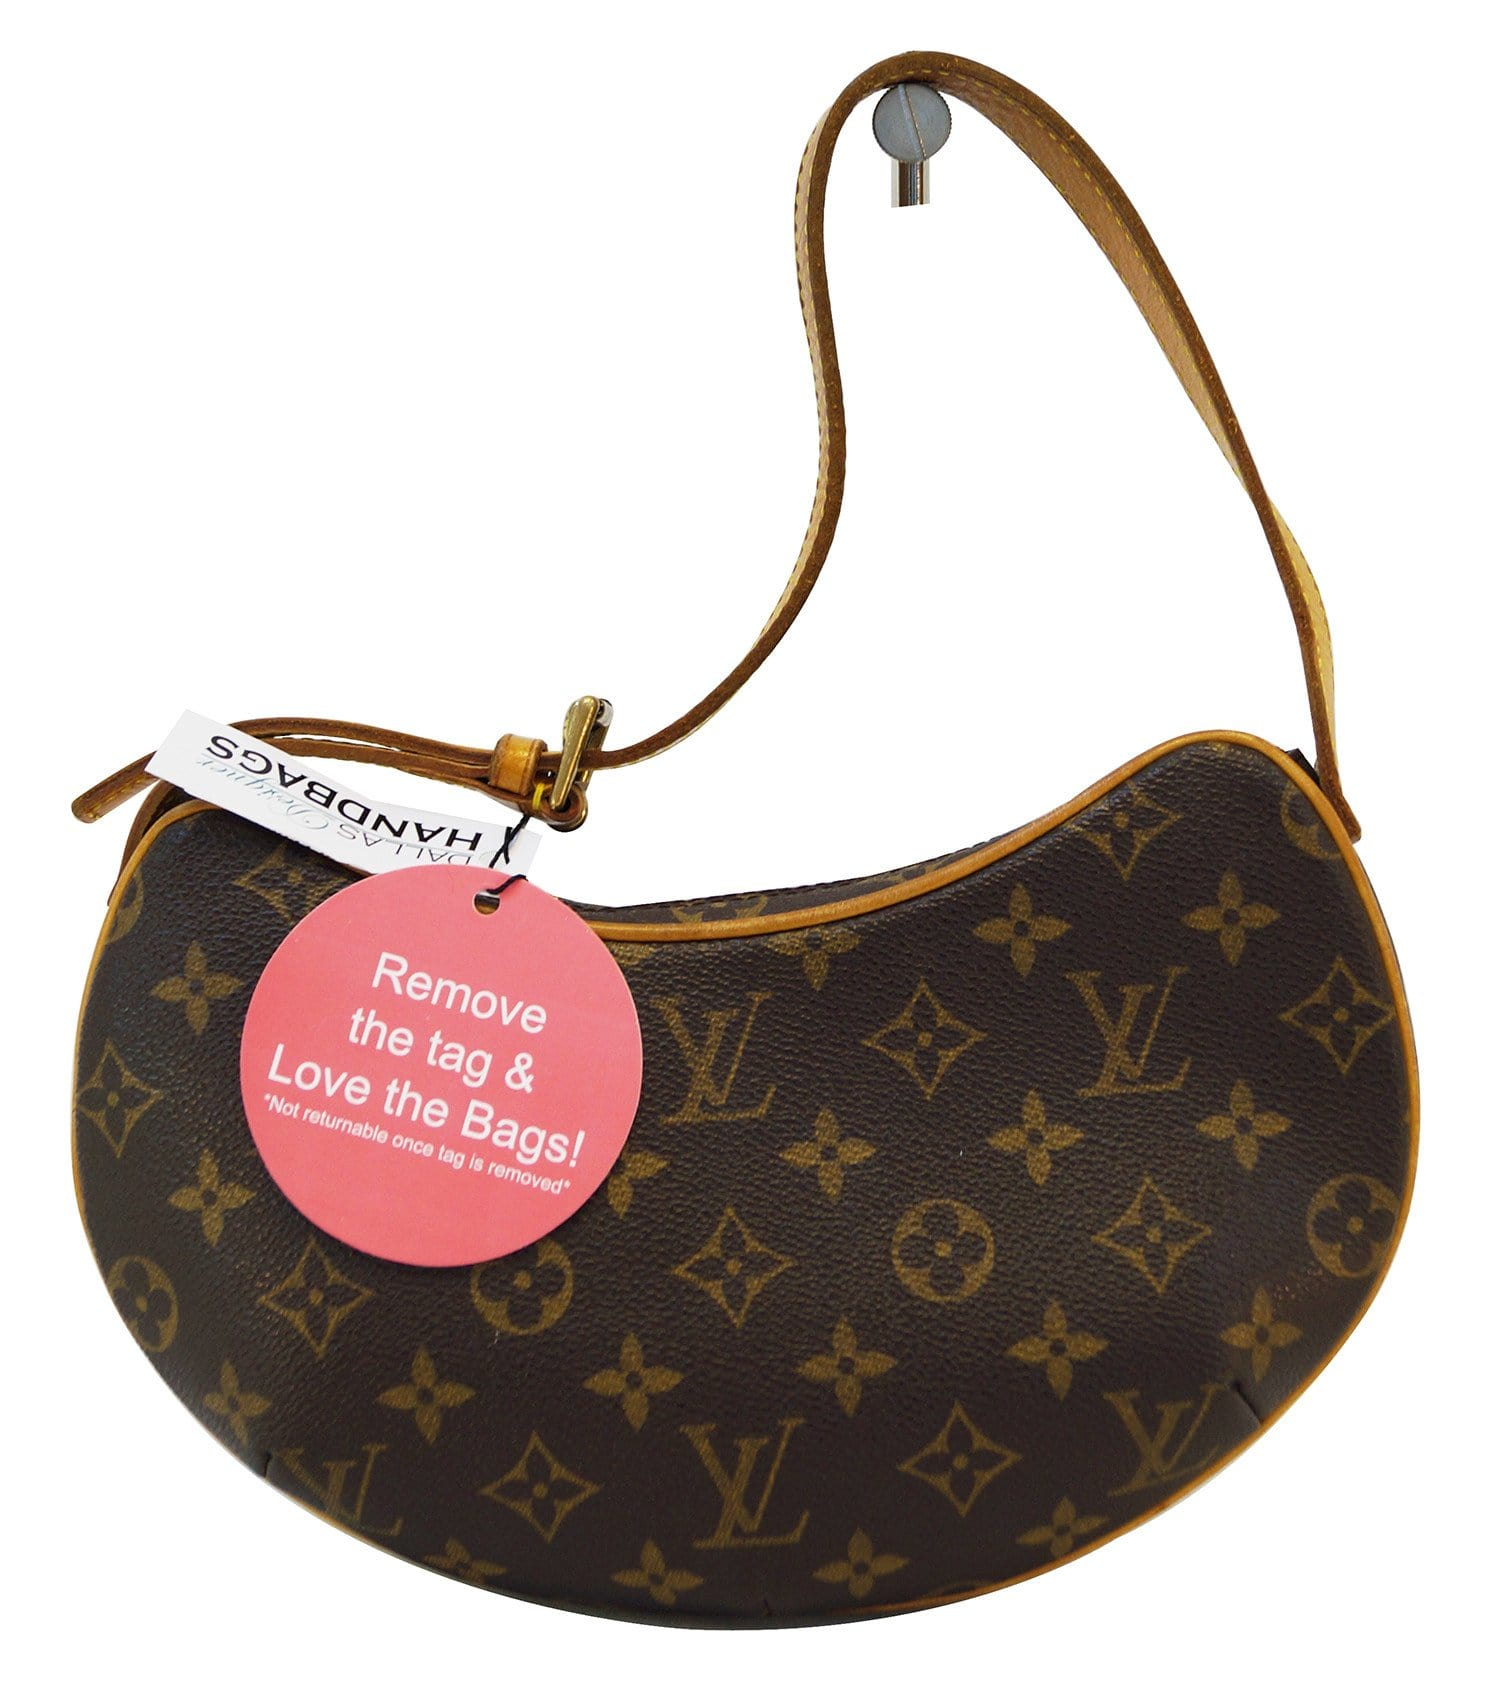 4a121ad03be2 LOUIS VUITTON Monogram Pochette Croissant PM Shoulder Bag - Final Call